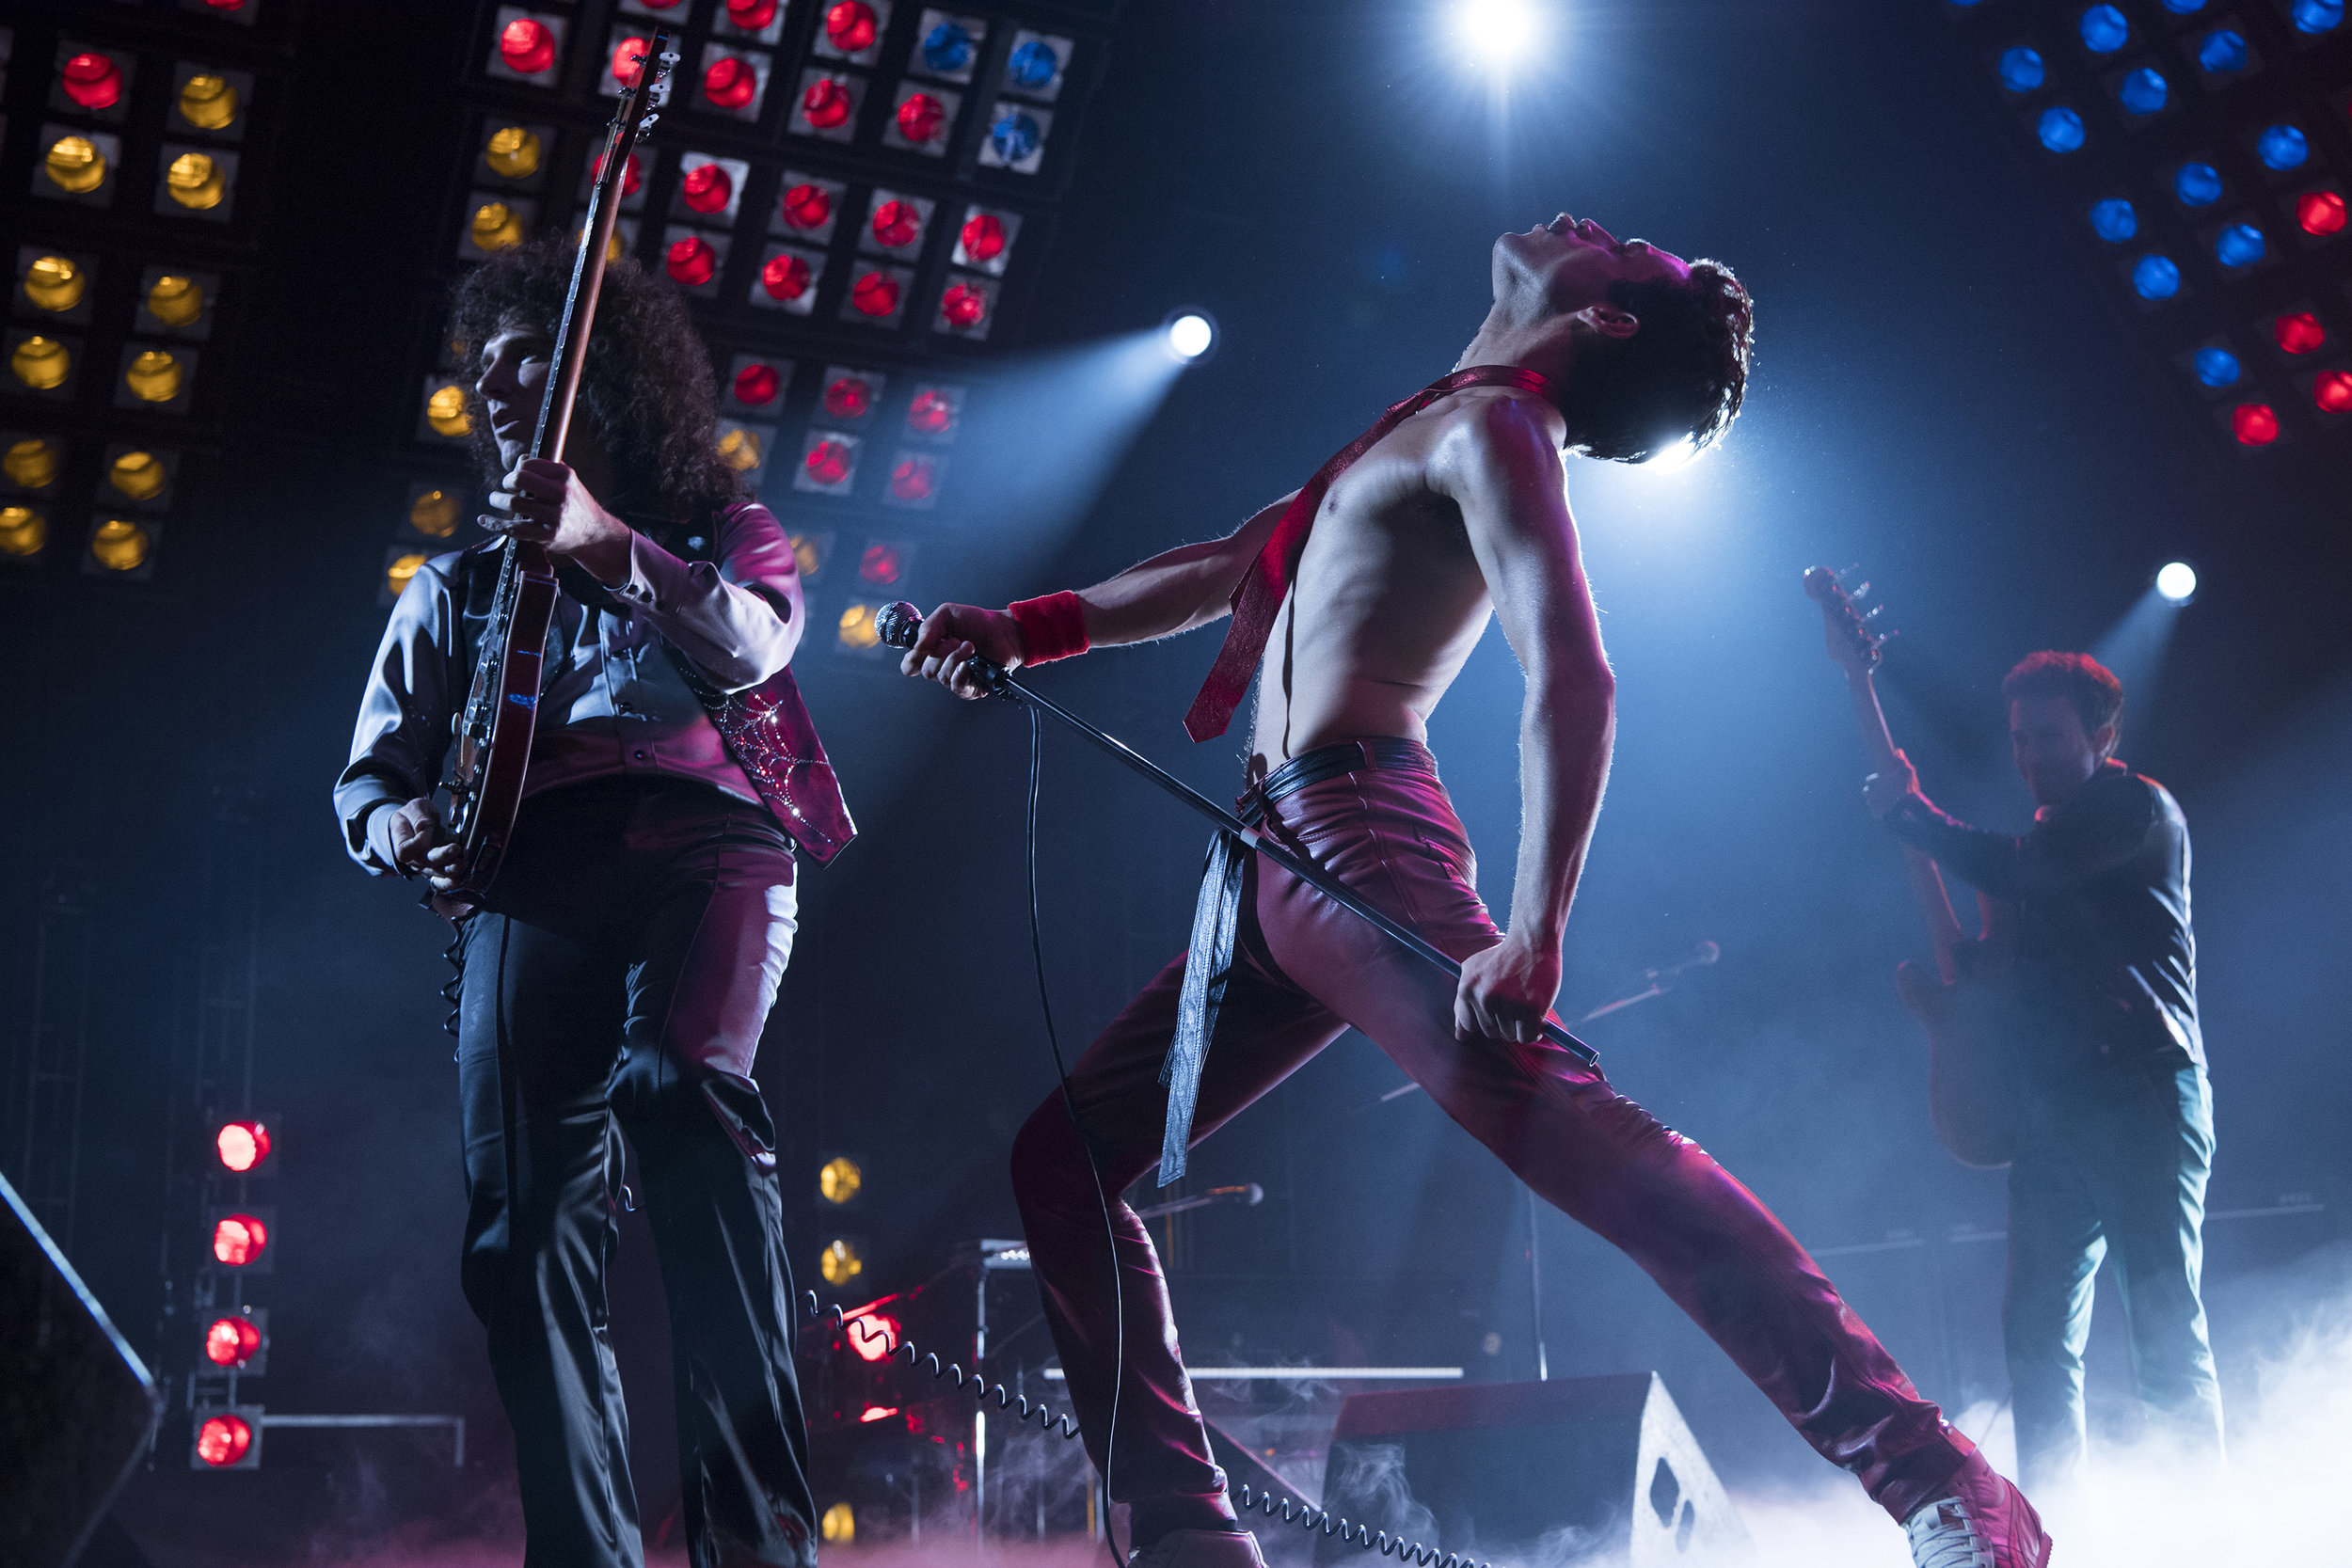 """The members of Queen — from left, Brian May (Gwilym Lee), Freddie Mercury (Rami Malek) and John Deacon (Joe Mazzello) — perform in a scene from the biographical drama """"Bohemian Rhapsody."""" (Photo by Alex Bailey, courtesy 20th Century Fox)"""